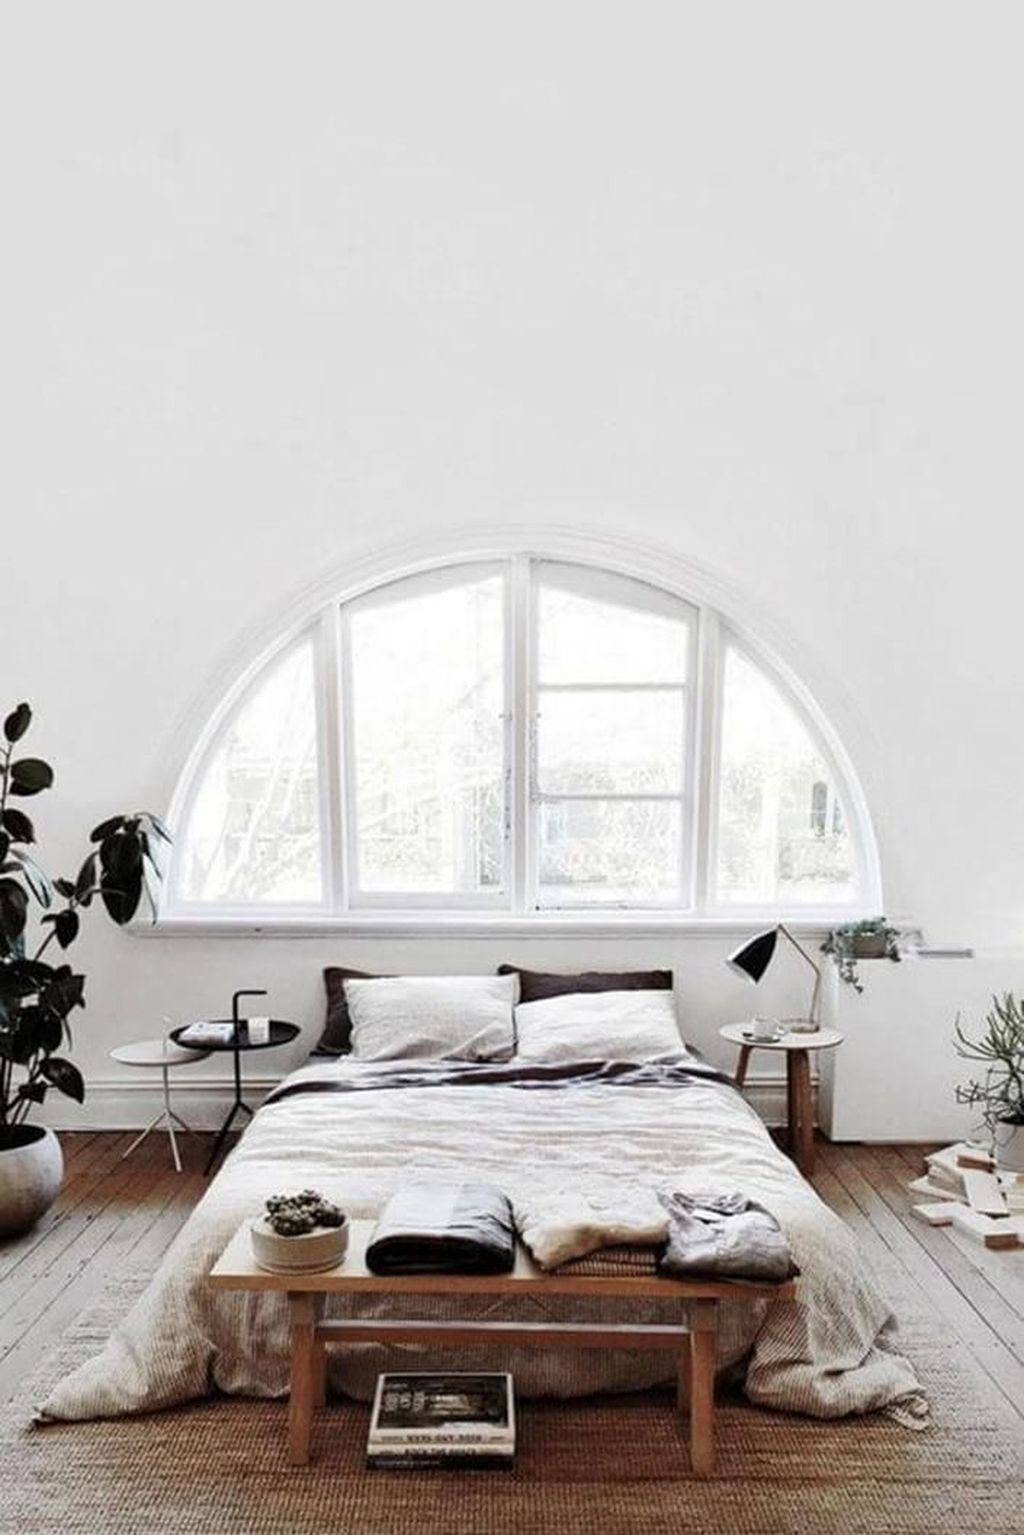 Minimalist Scandinavian Bedroom Decor Ideas 34